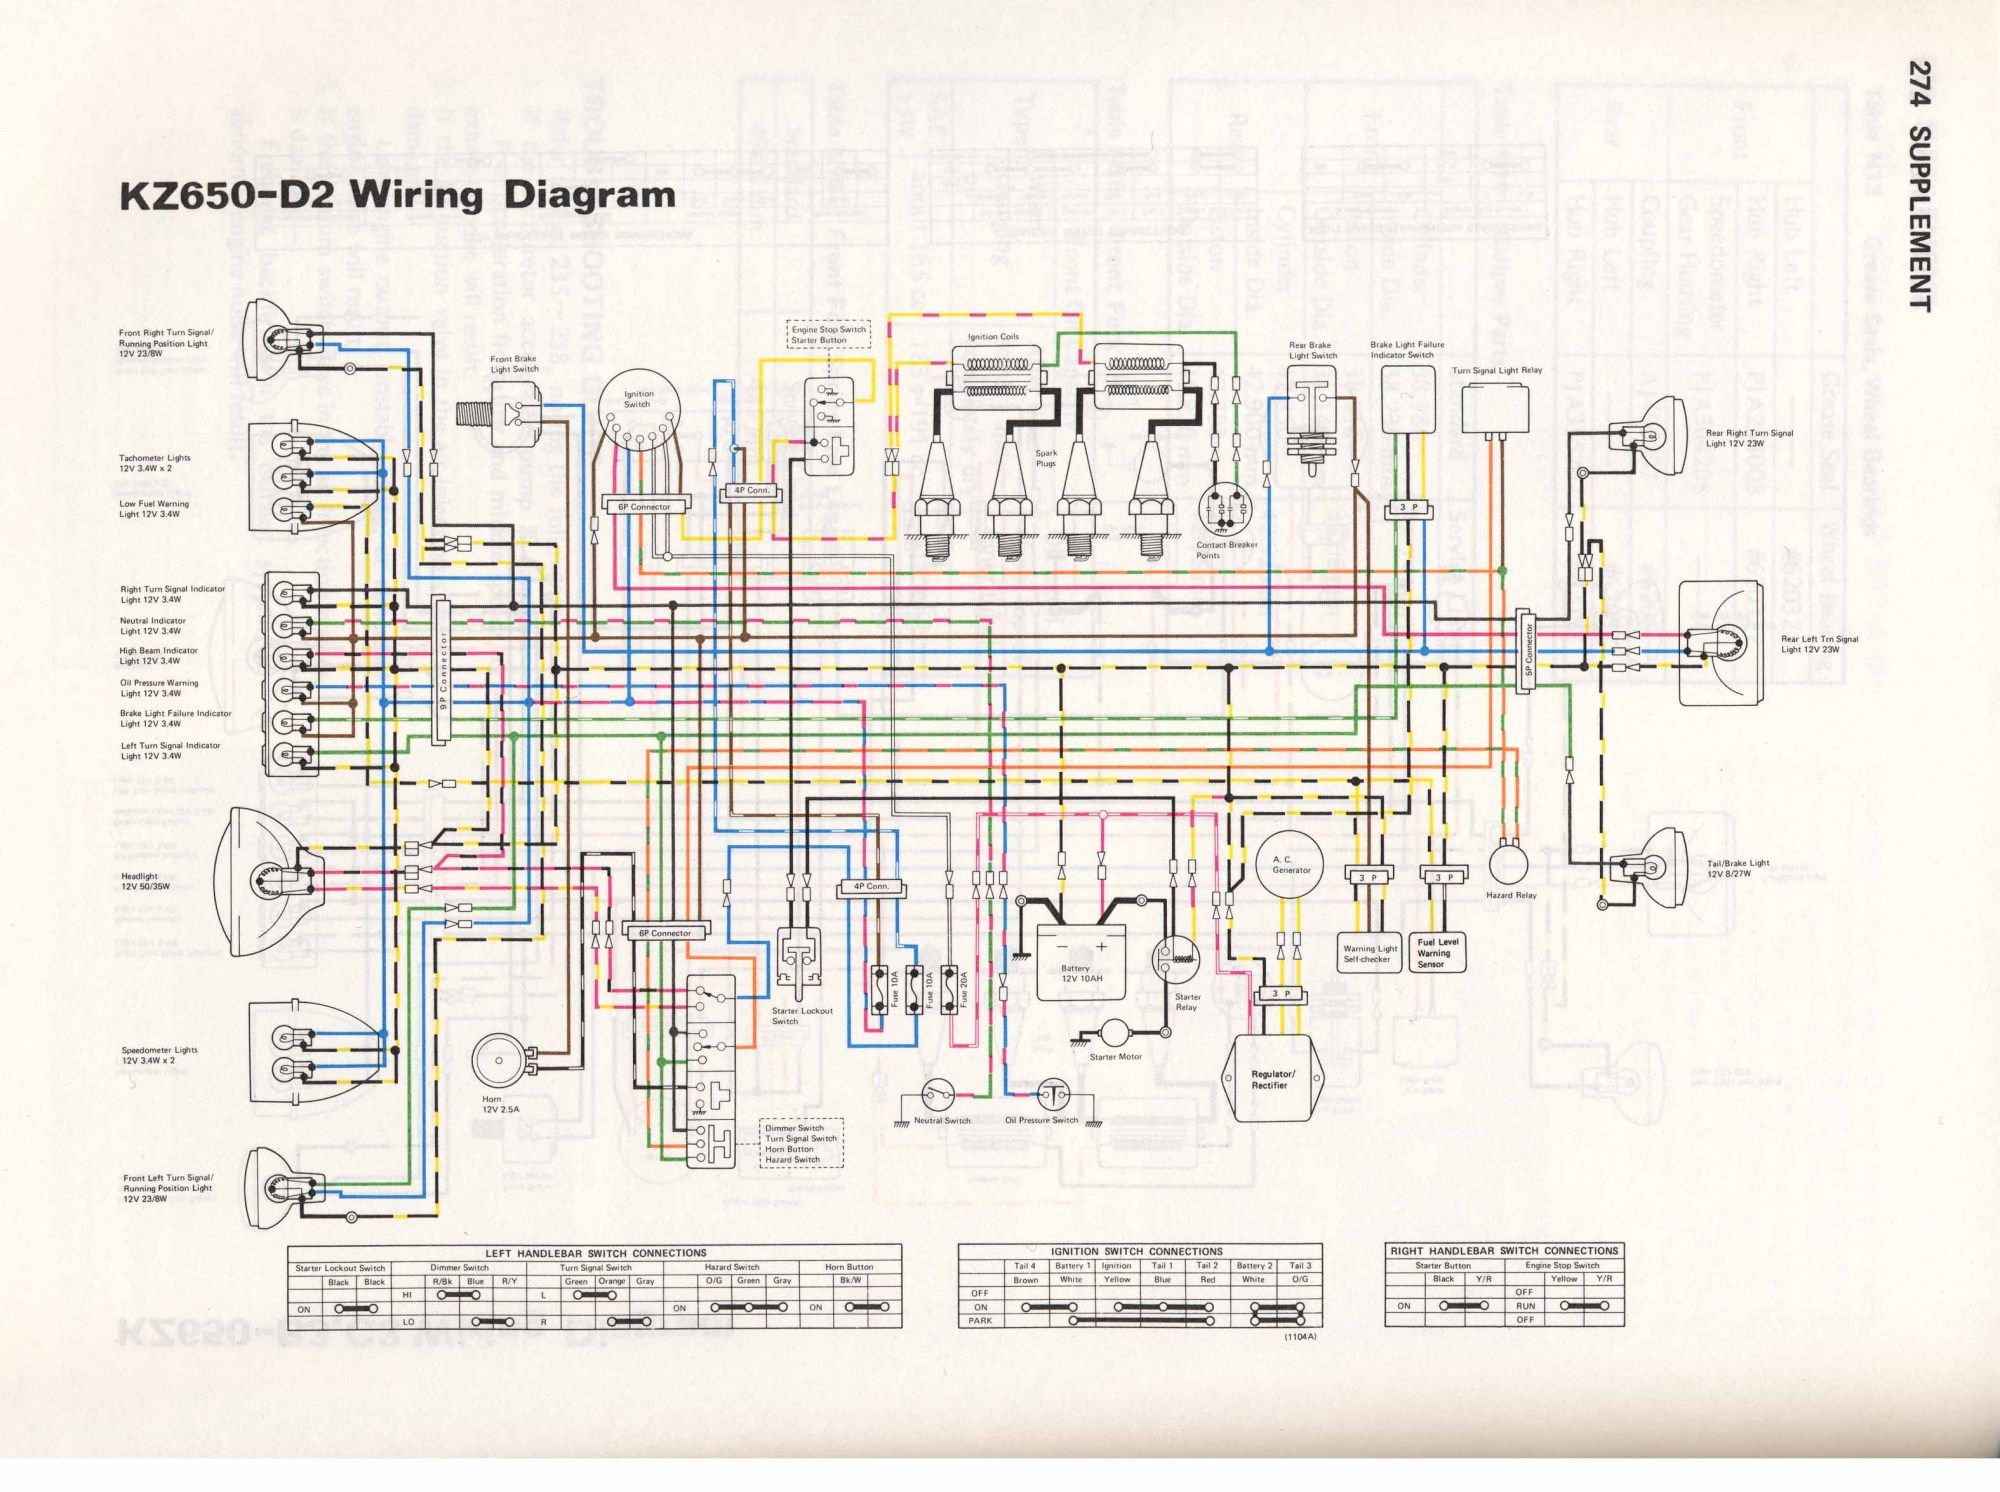 hight resolution of kz650 info wiring diagrams 1980 kawasaki ke100 wiring diagram 1977 kz650 wiring diagram